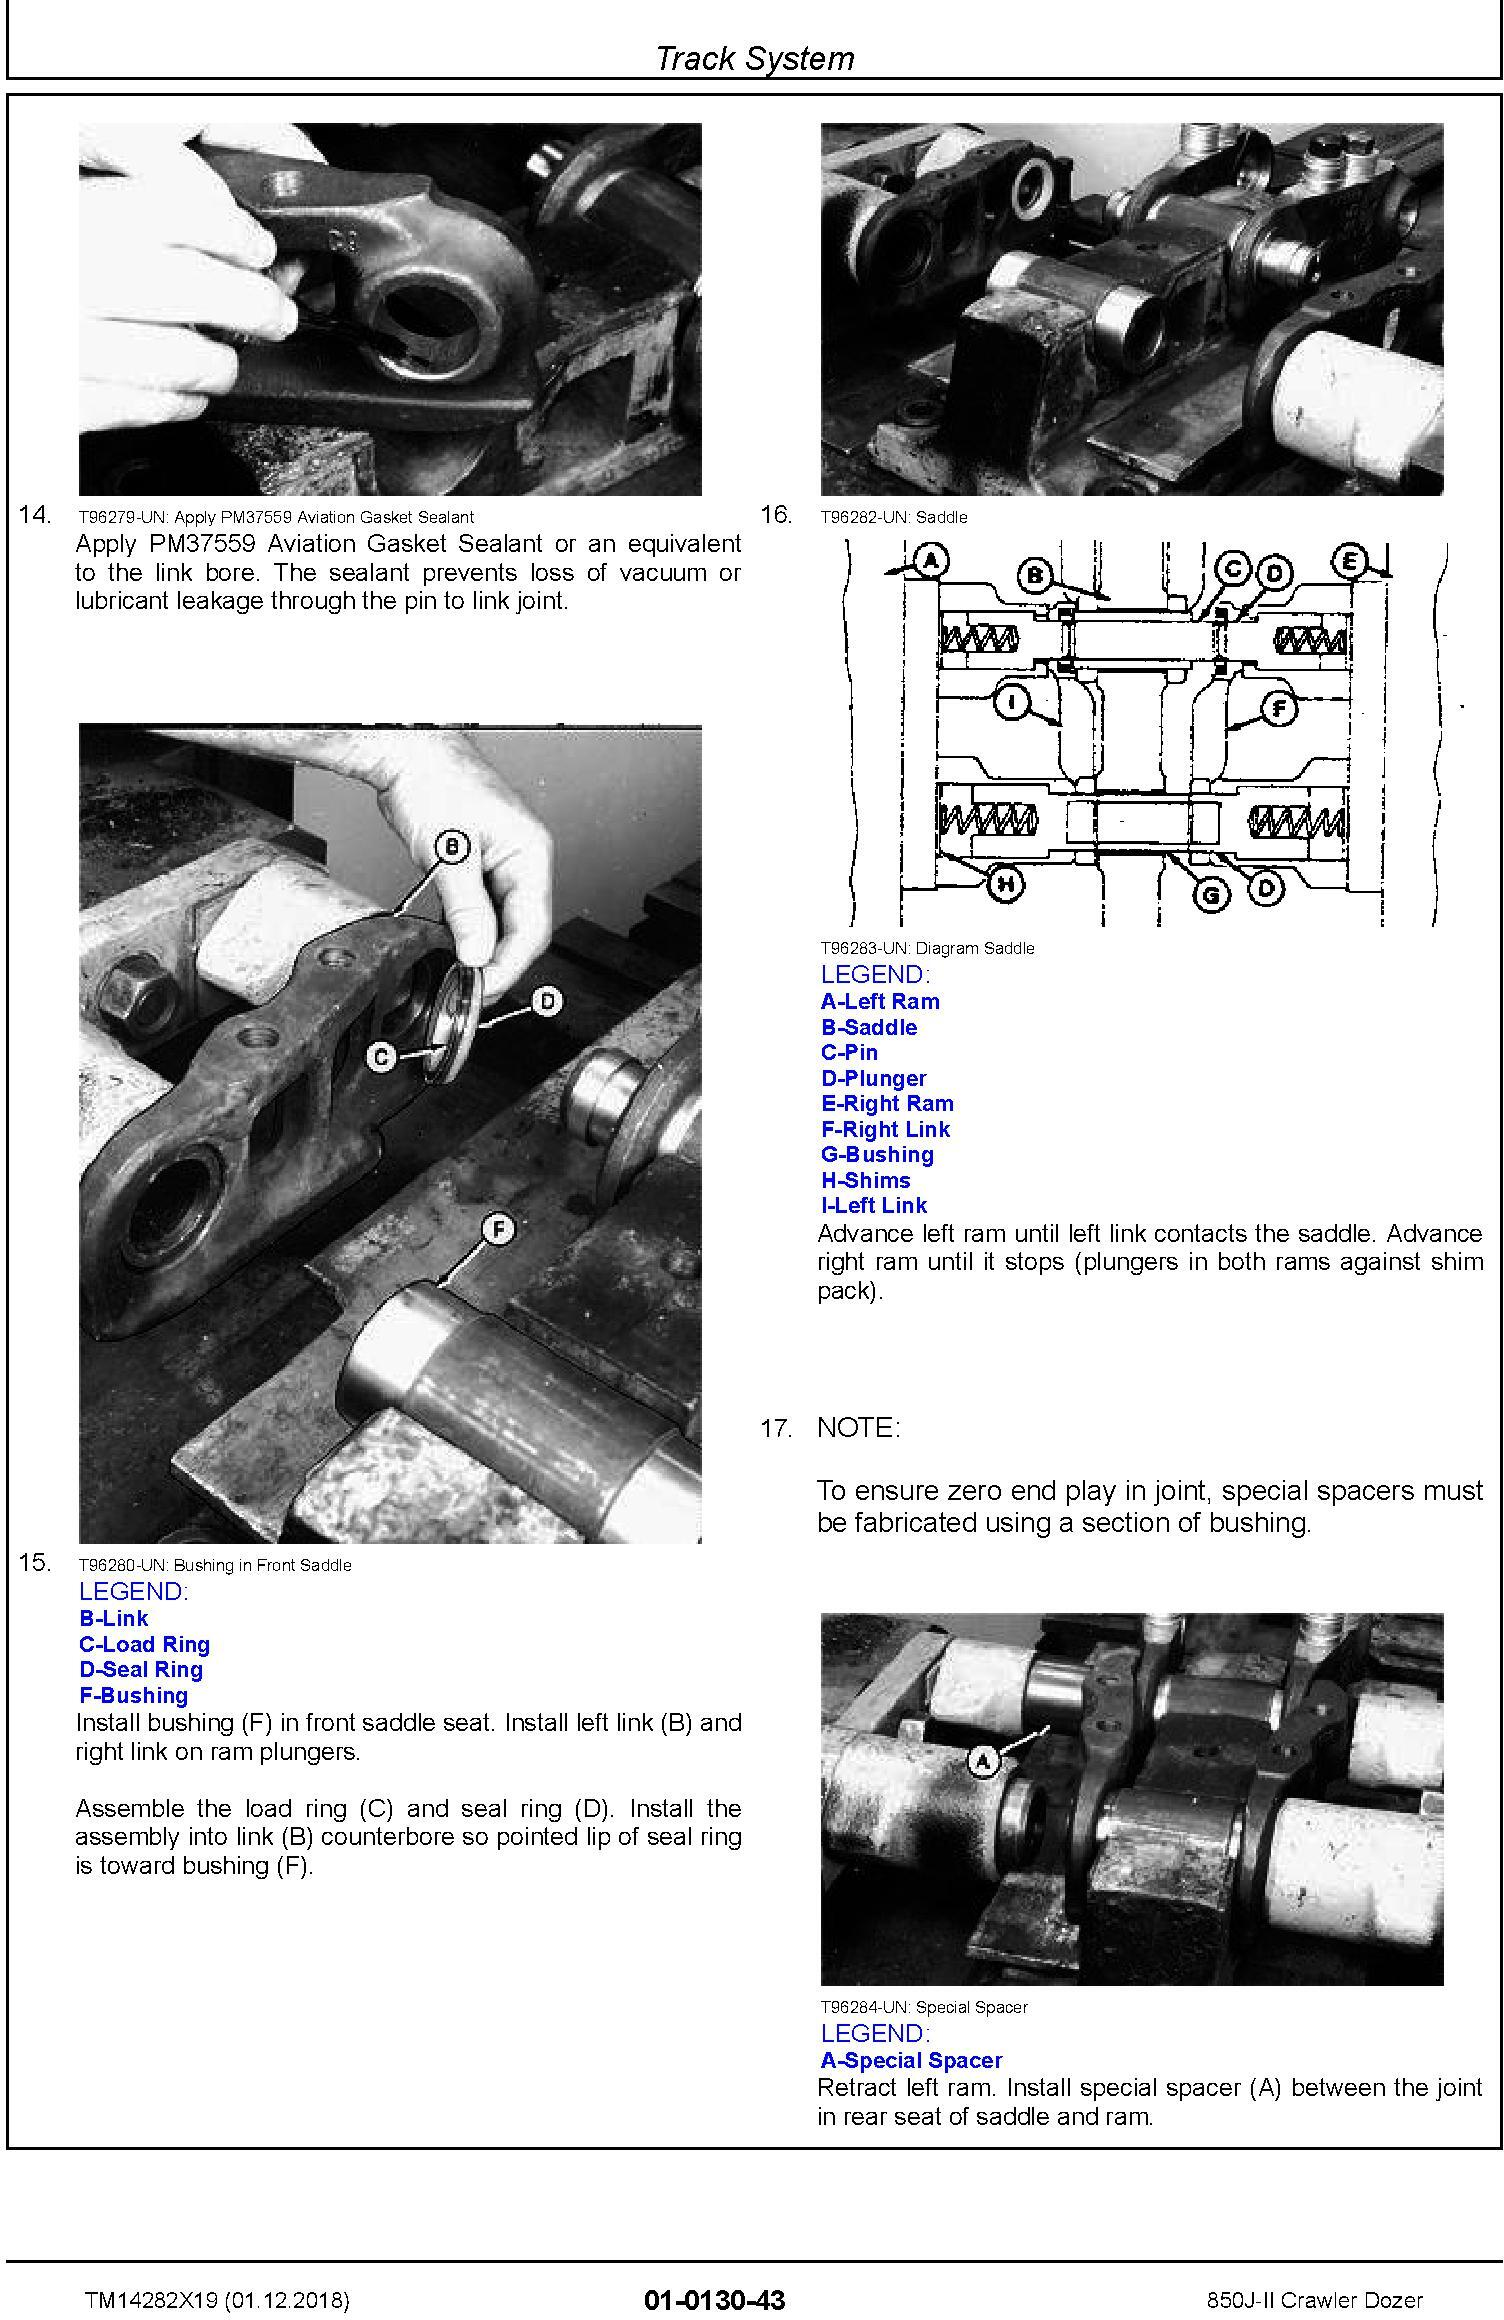 John Deere 850J-II (SN. C000001-) Crawler Dozer Service Repair Technical Manual (TM14282X19) - 2